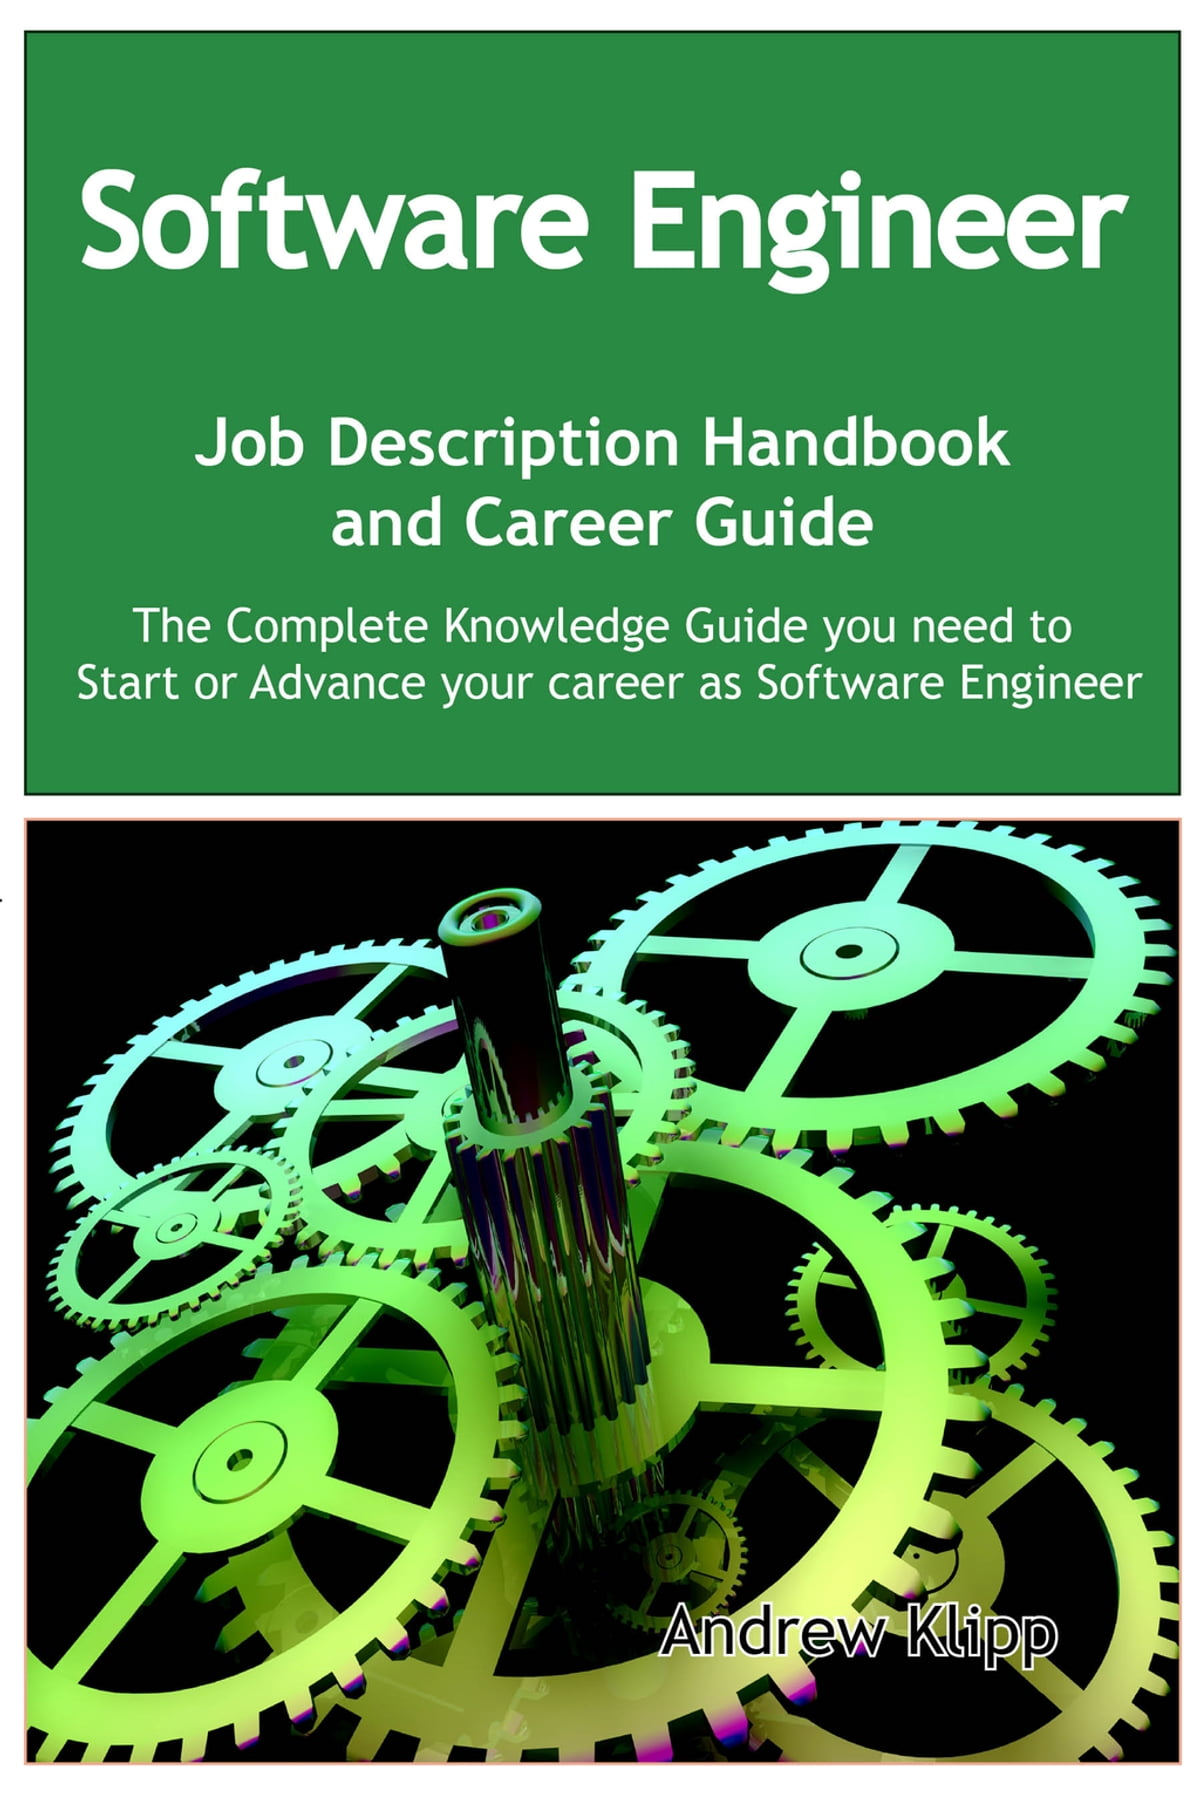 The Software Engineer Job Description Handbook and Career Guide: The  Complete Knowledge Guide you need to Start or Advance your Career as  Software